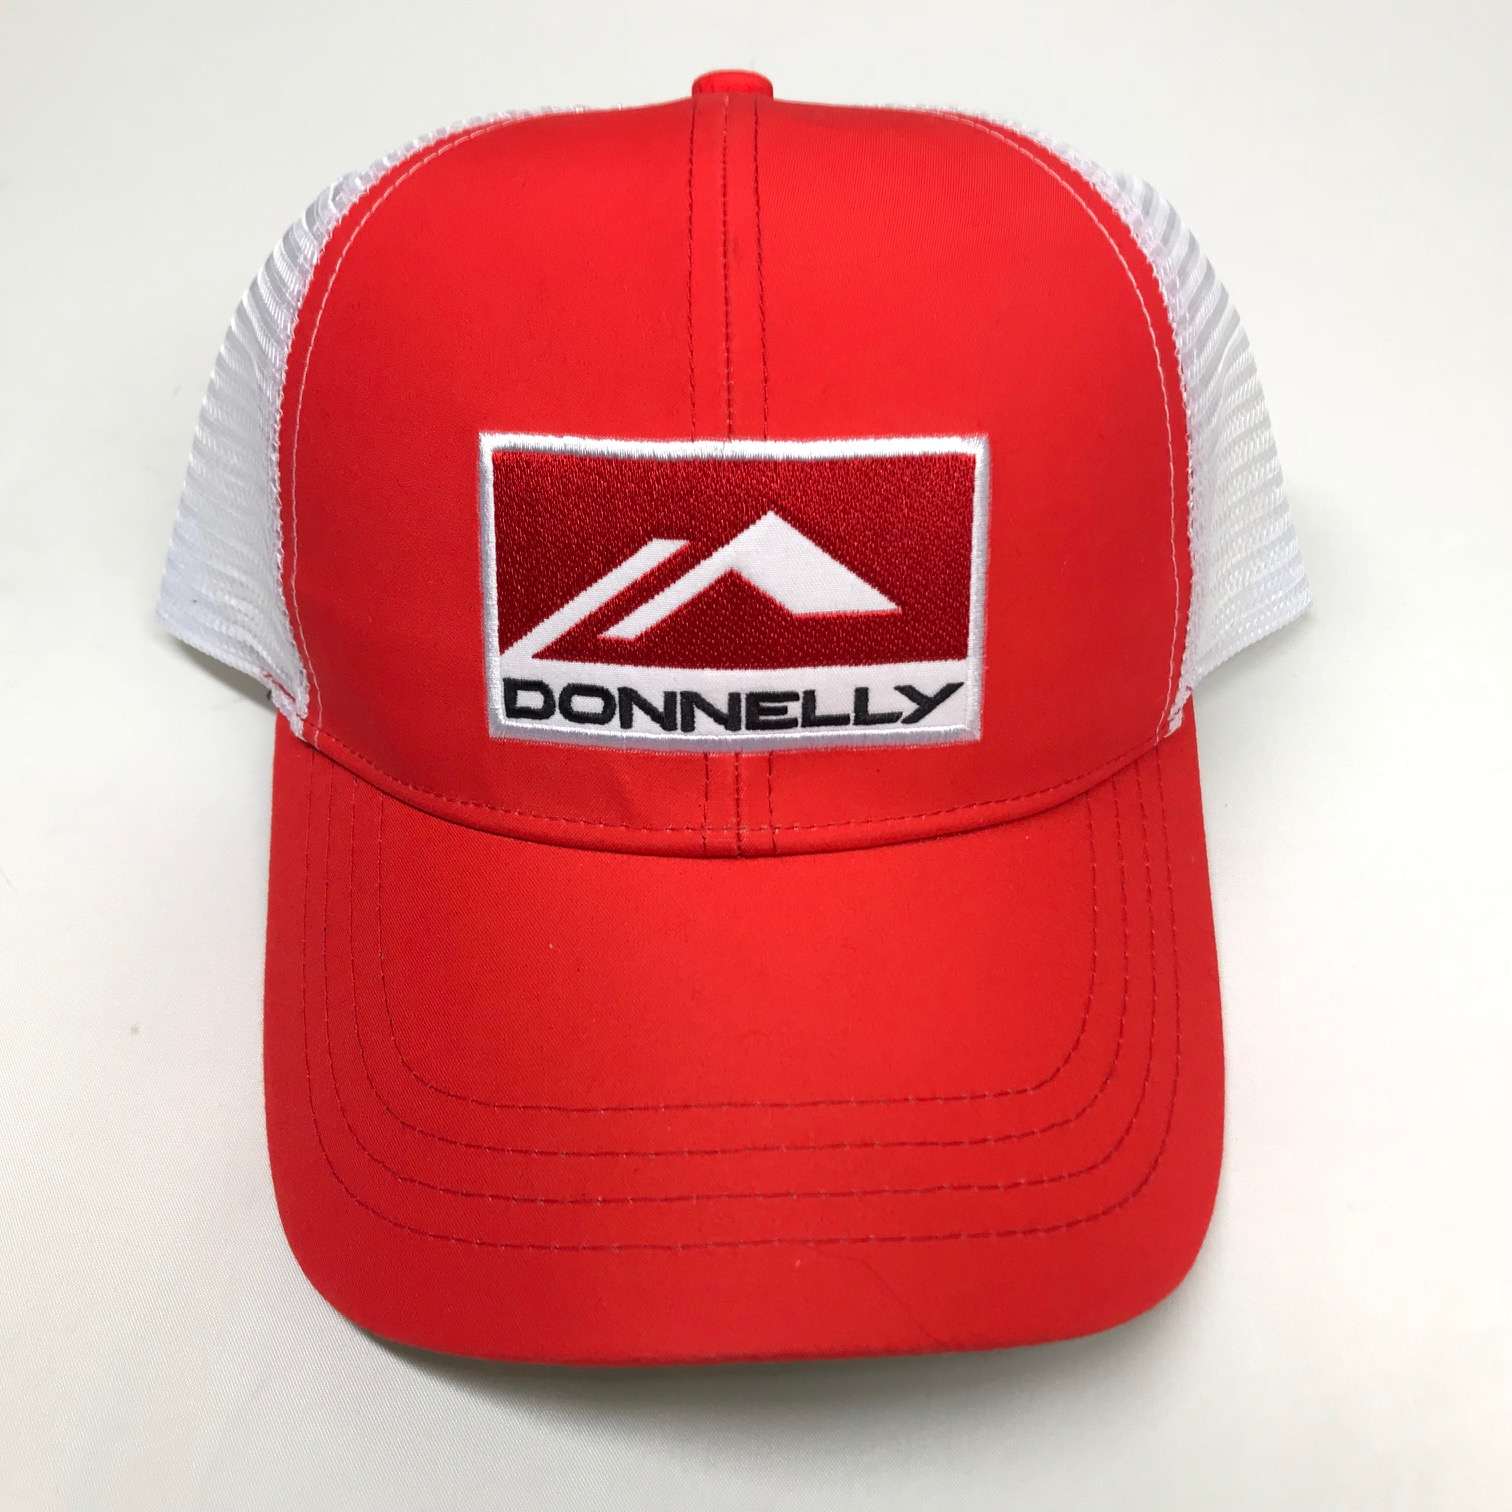 Donnelly Trucker Hat, Curved Bill, Red THUMBNAIL